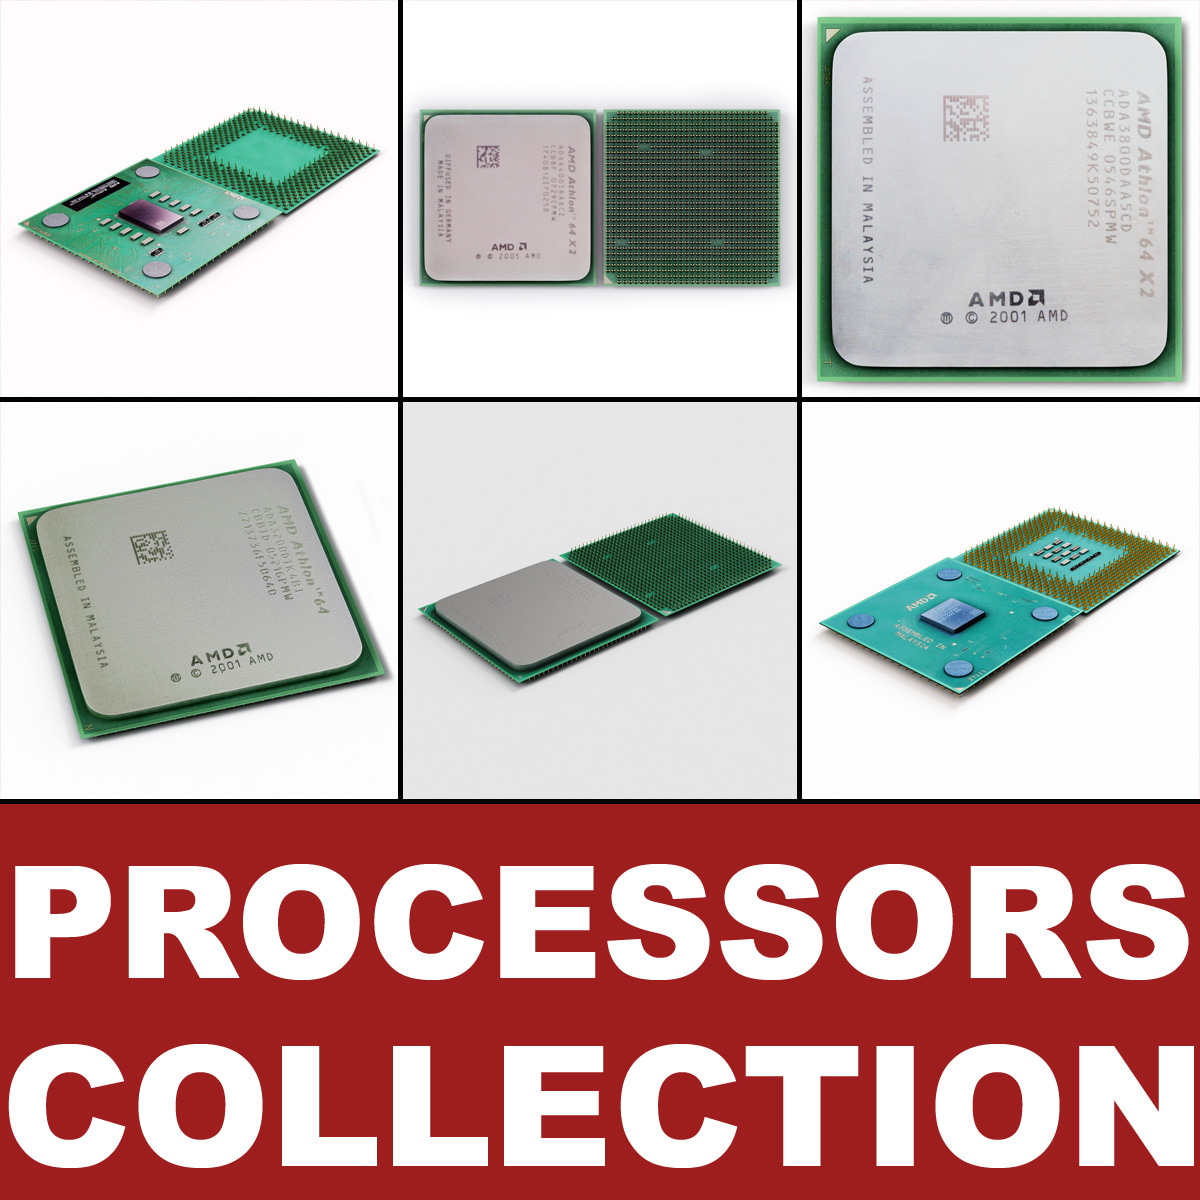 AMD_Processors_Collection_00.jpg